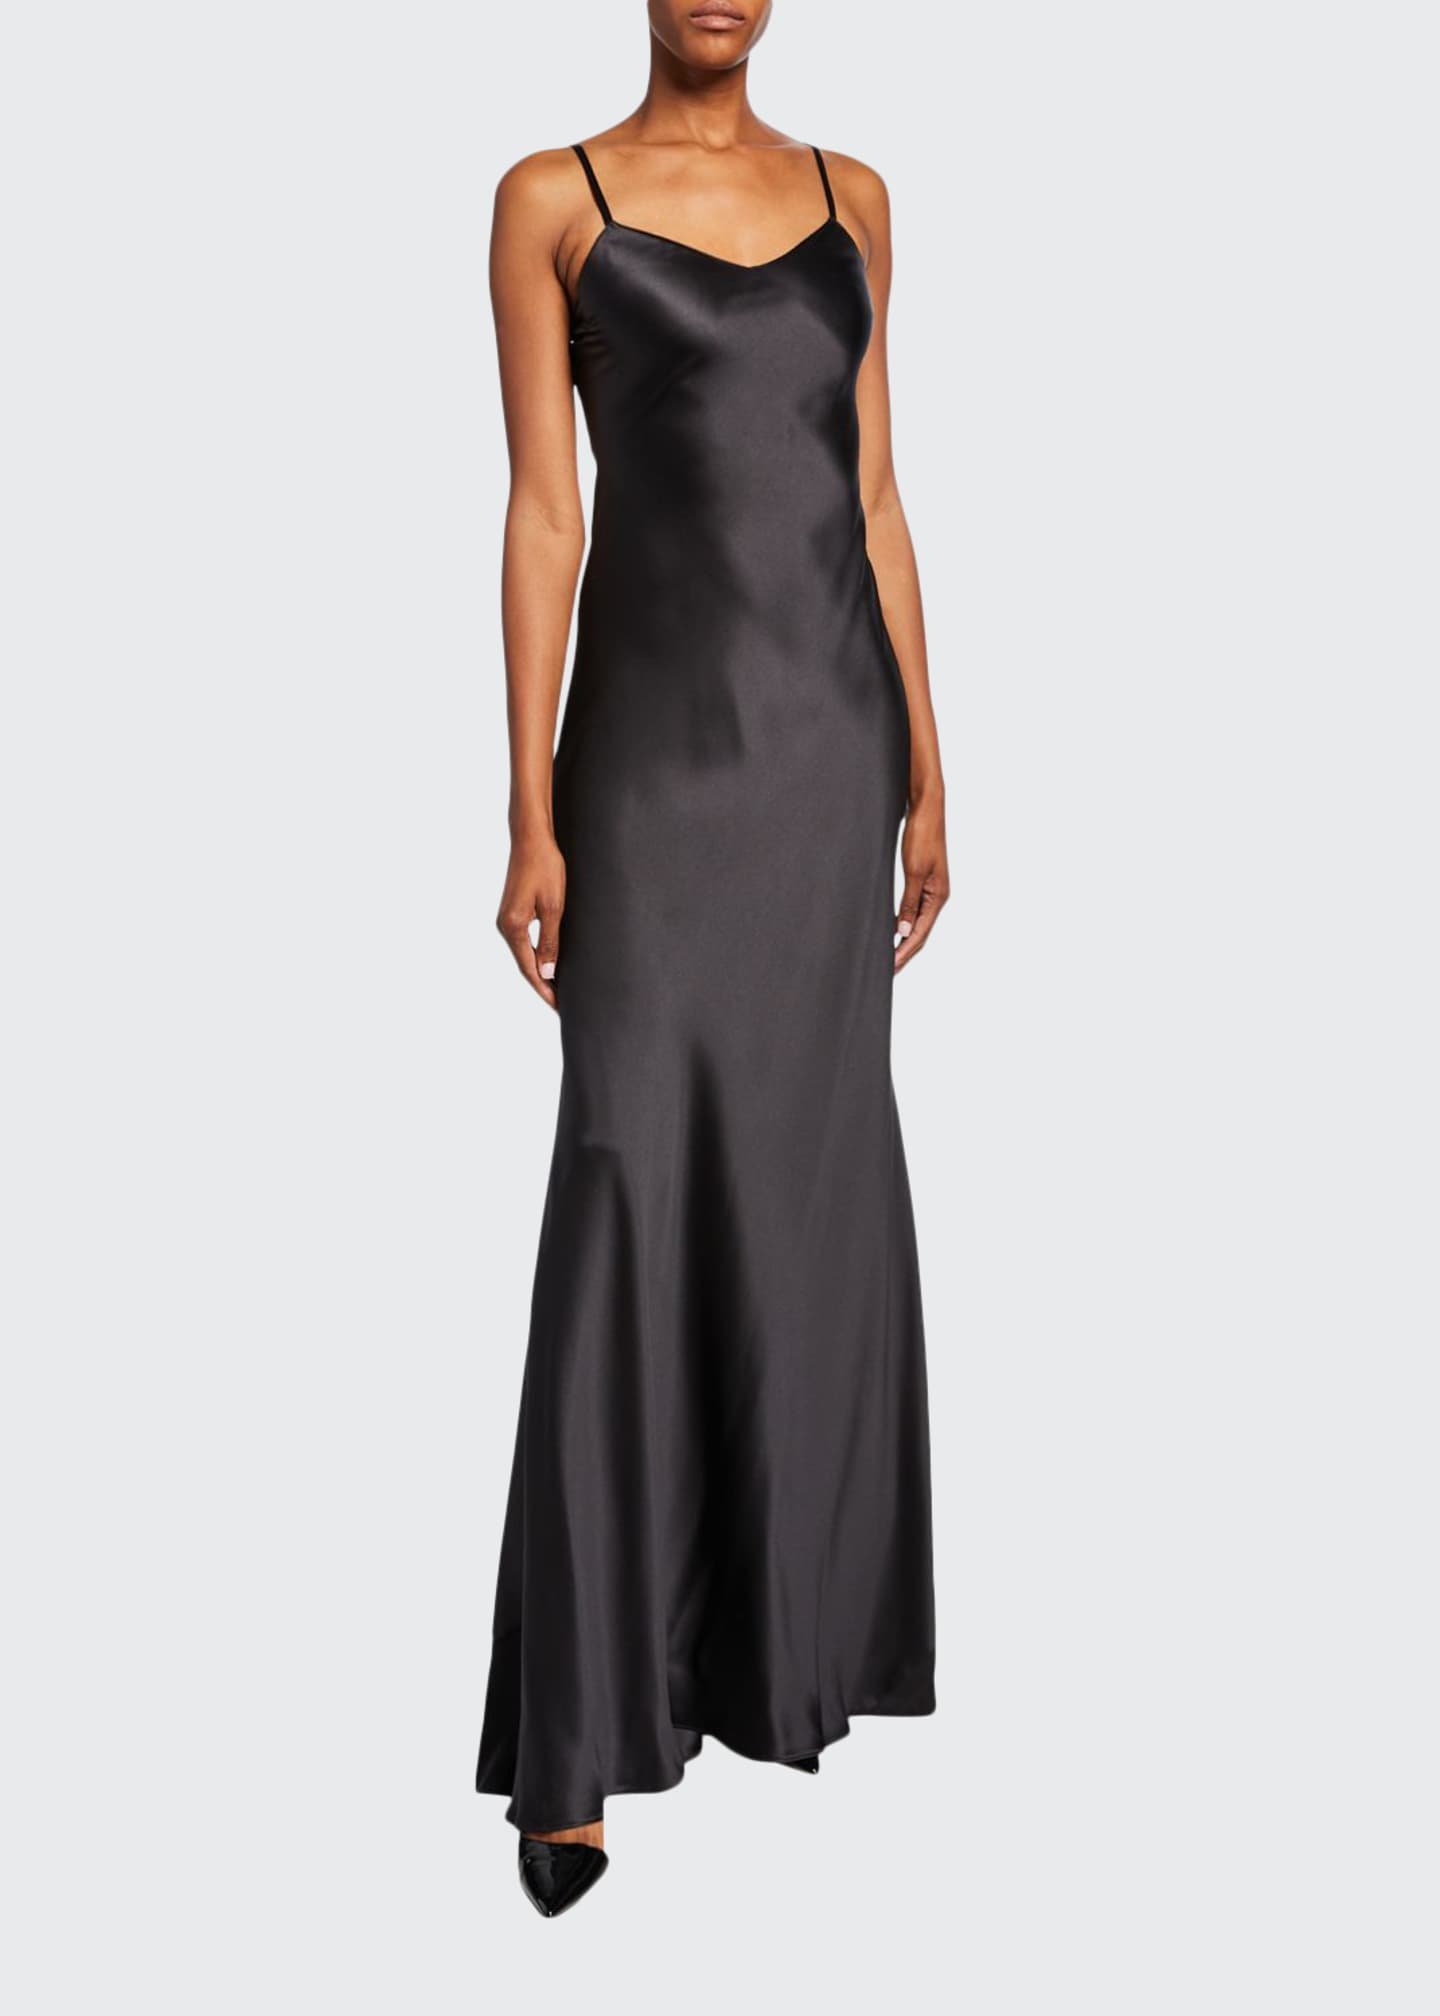 Ralph Lauren Collection Evelyn Charmeuse Maxi Slip Dress